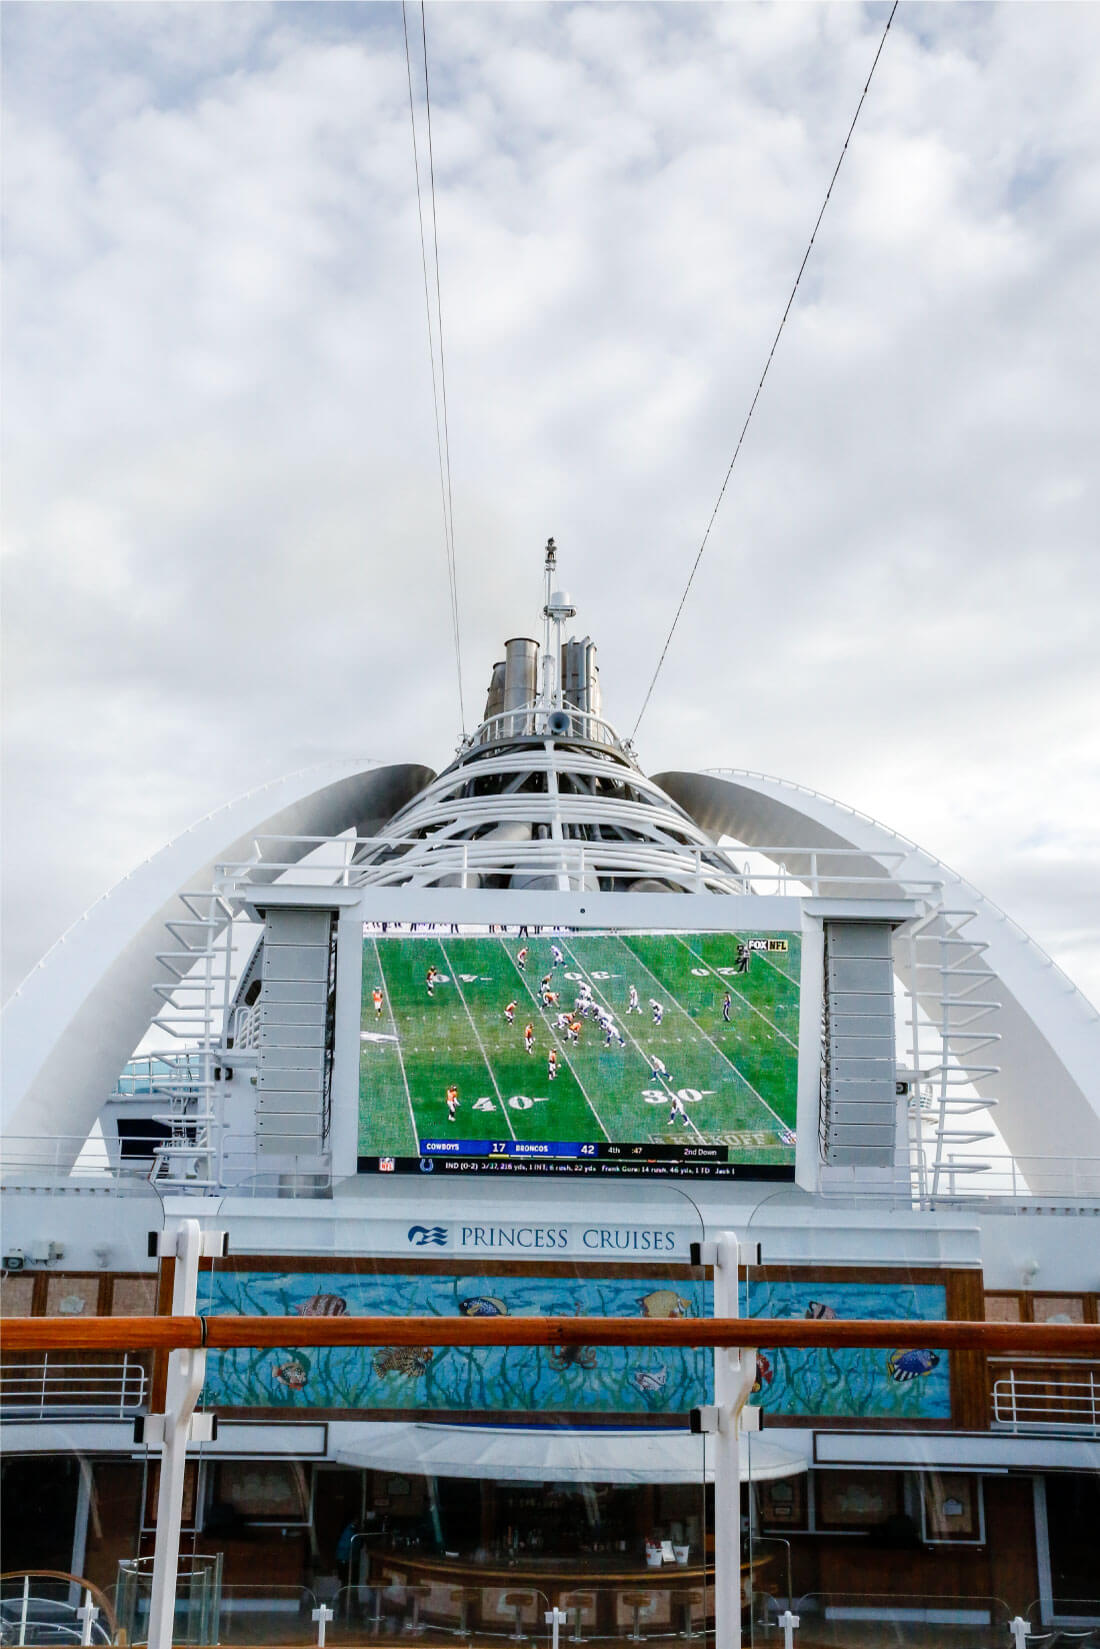 What's It Really Like Going on an Alaskan Cruise? Football game